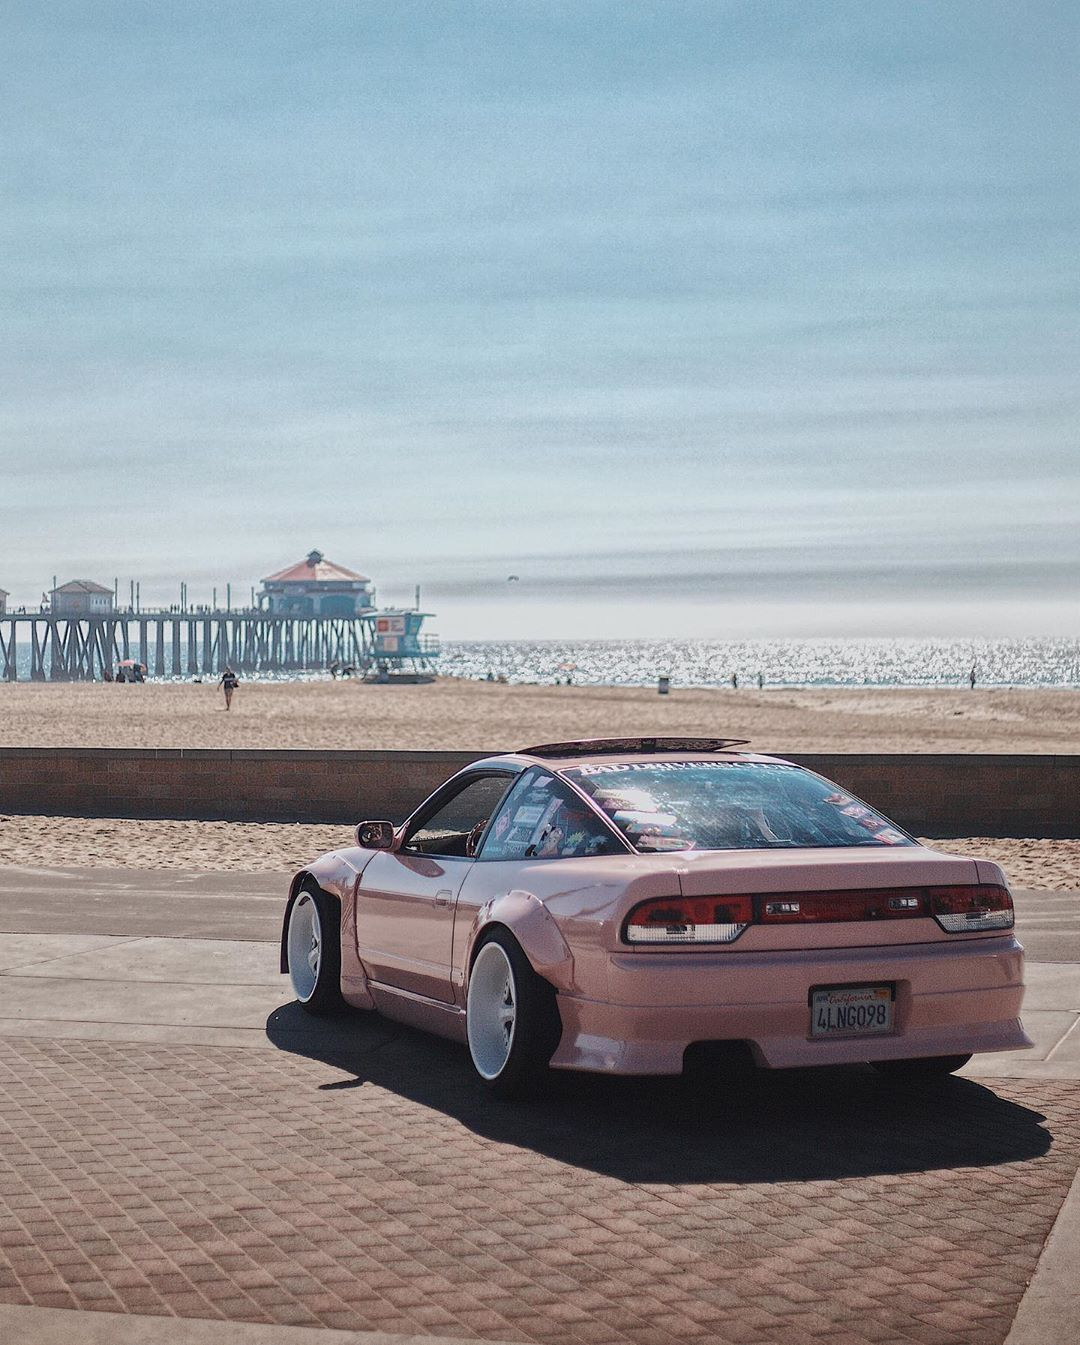 240sx W S15 Front End Japanese Cars Cool Cars Fast Cars